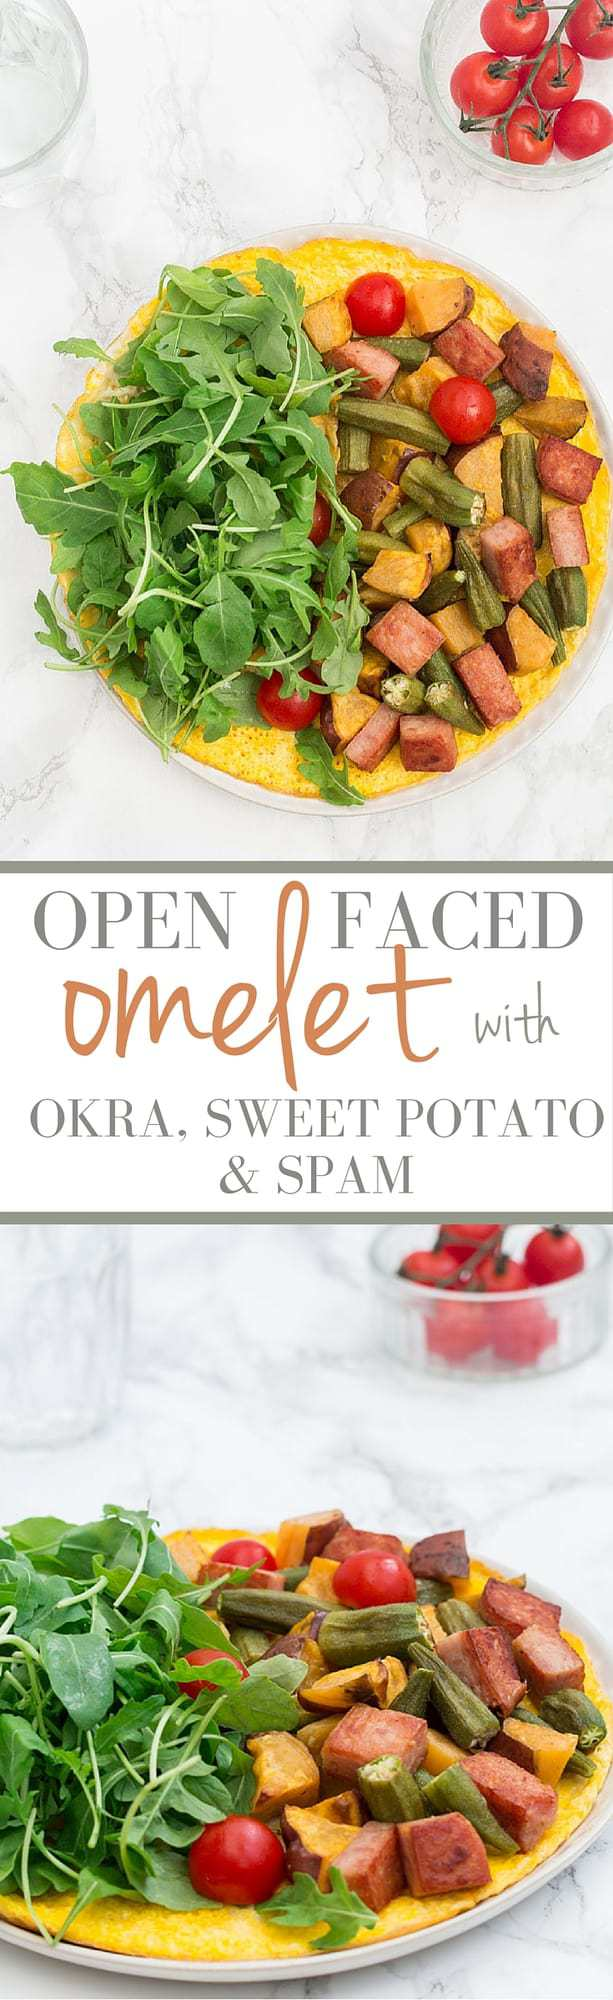 open-faced omelet with okra and sweet potato and spam | Recipes From A Pantry